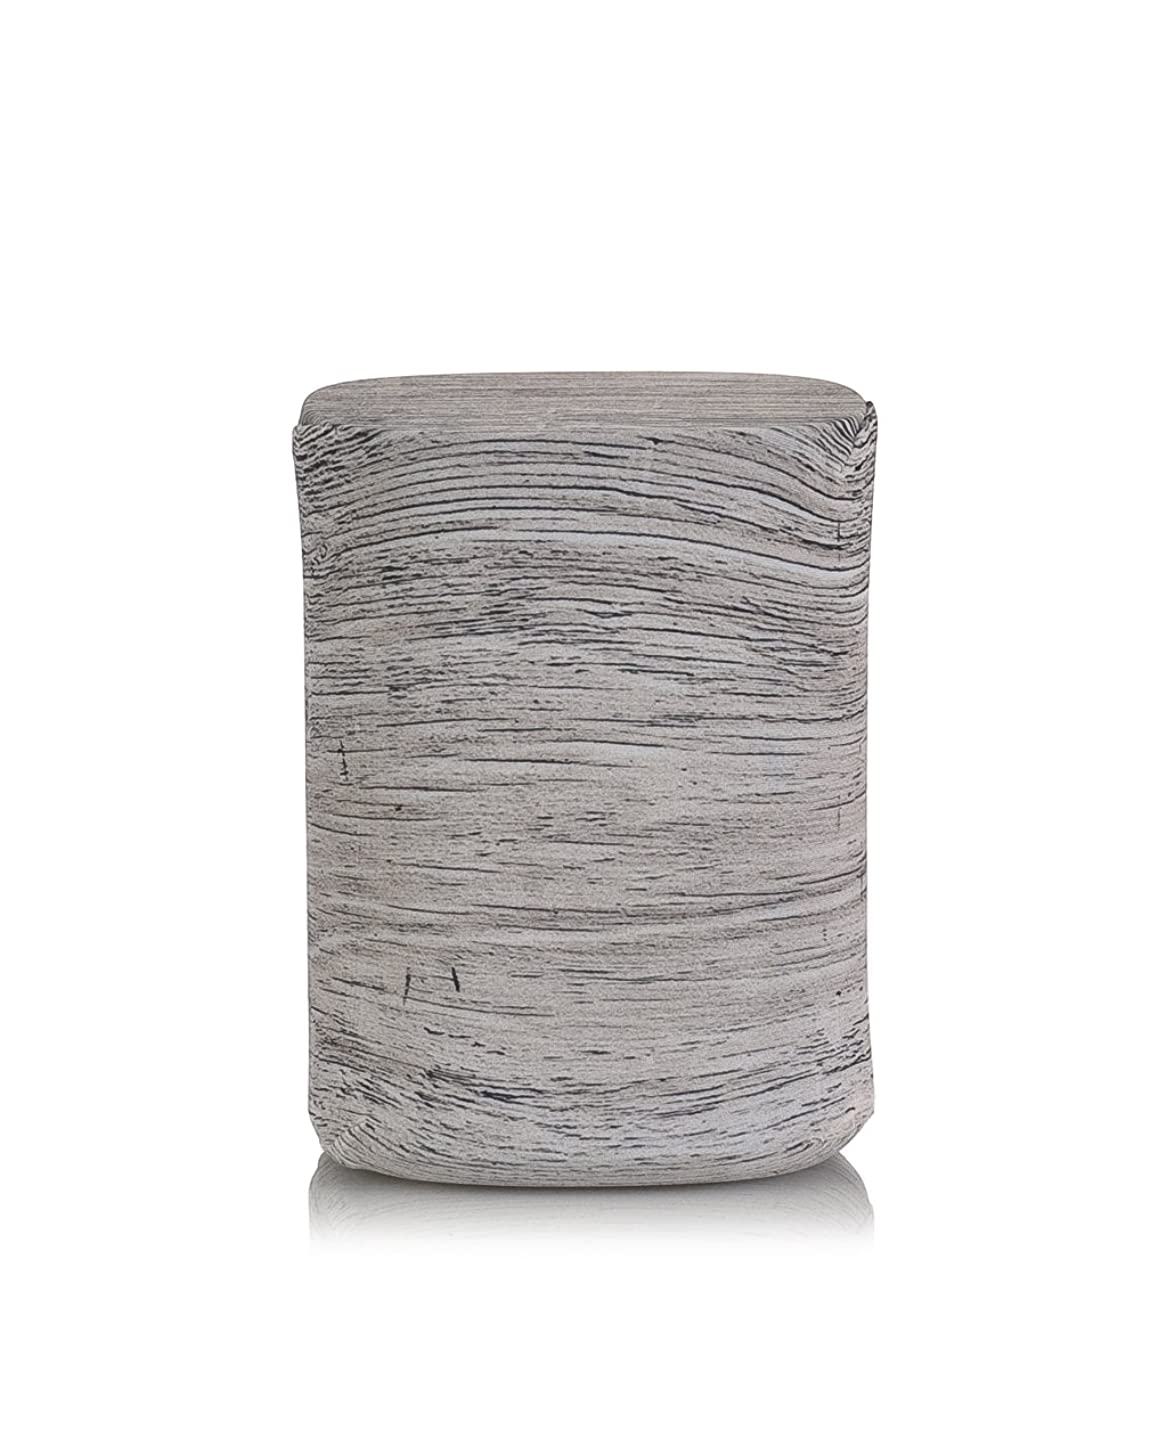 ColorYourSound 'World White Wood' for Sonos Play:1 / One